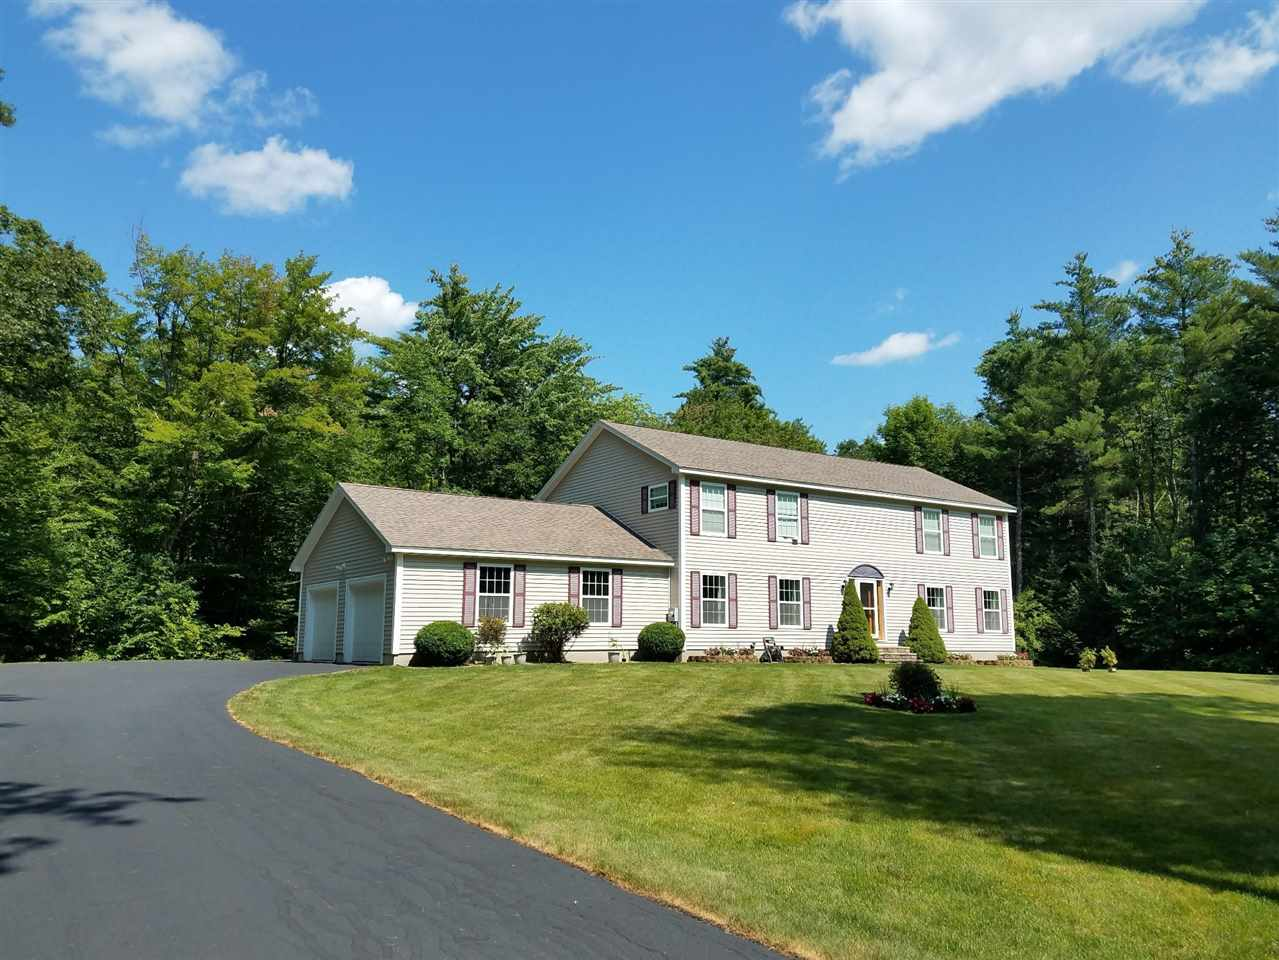 MLS 4703505: 415 Powder Mill Road, Alton NH